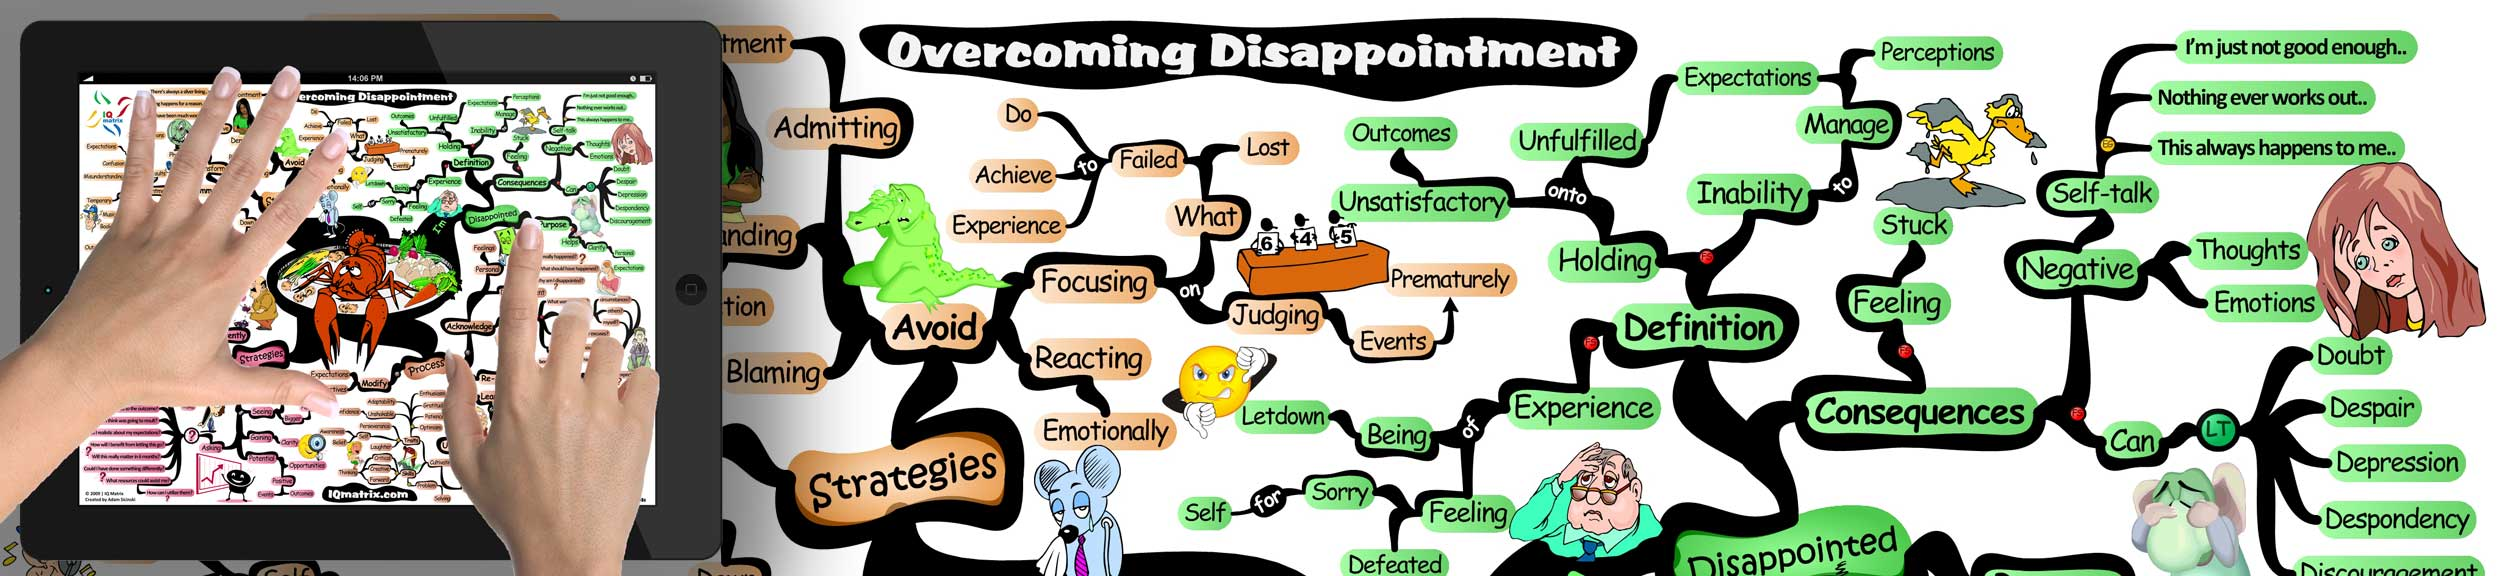 How to Overcome Disappointment and Refocus on Your Goals